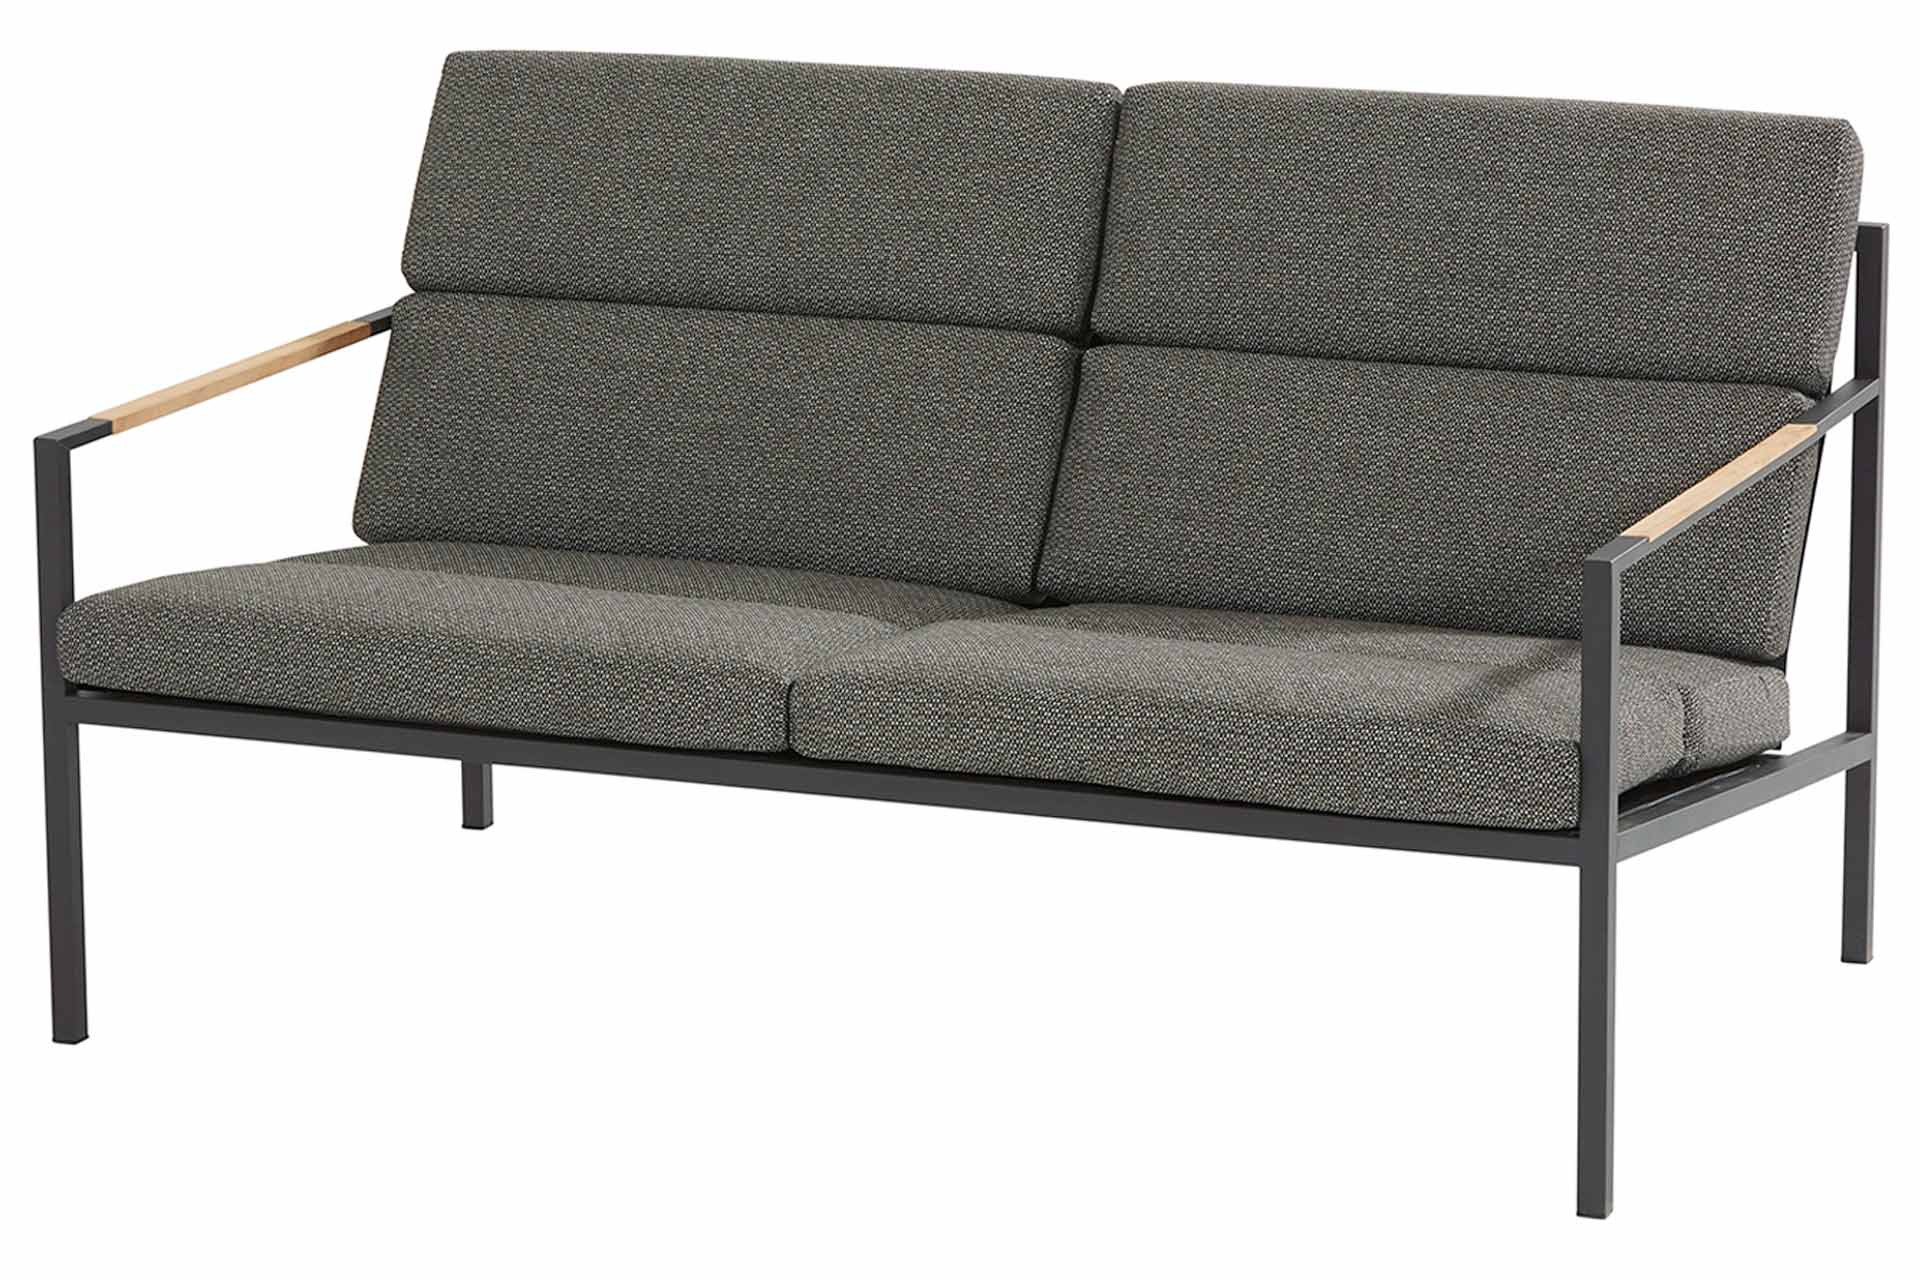 Trentino living 2.5 seater bench